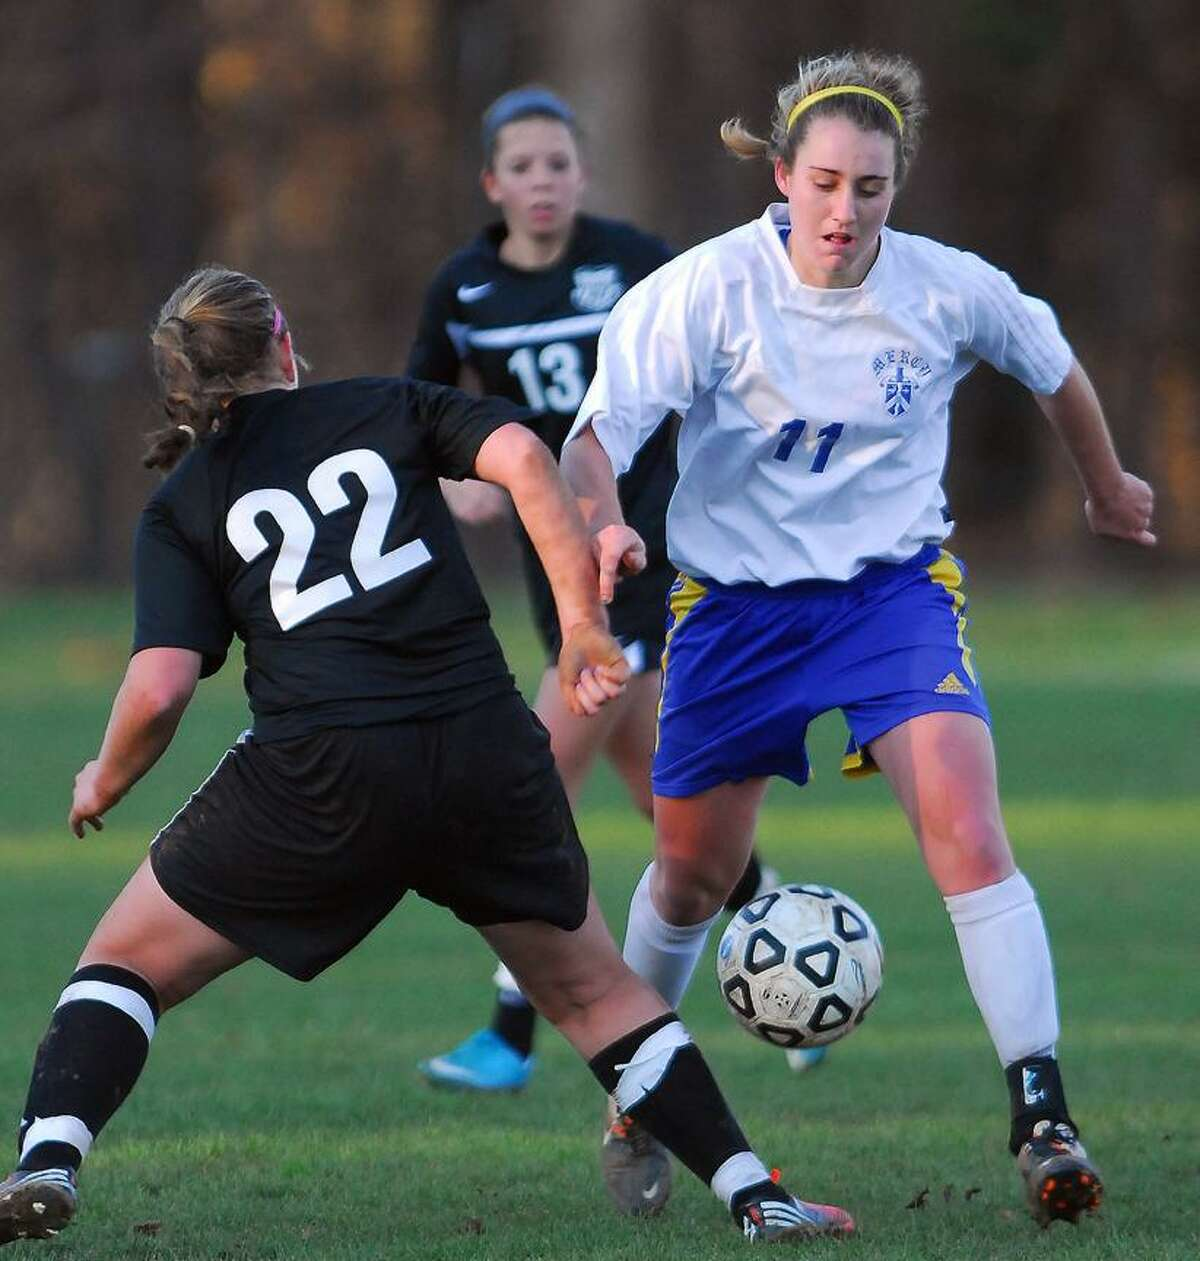 Catherine Avalone/The Middletown Press Mercy senior Sheena Landy battles Trumbull's Nicole Schwartz in their Class LL quarterfinal game Wednesday in Middletown. Trumbull won, 3-1.